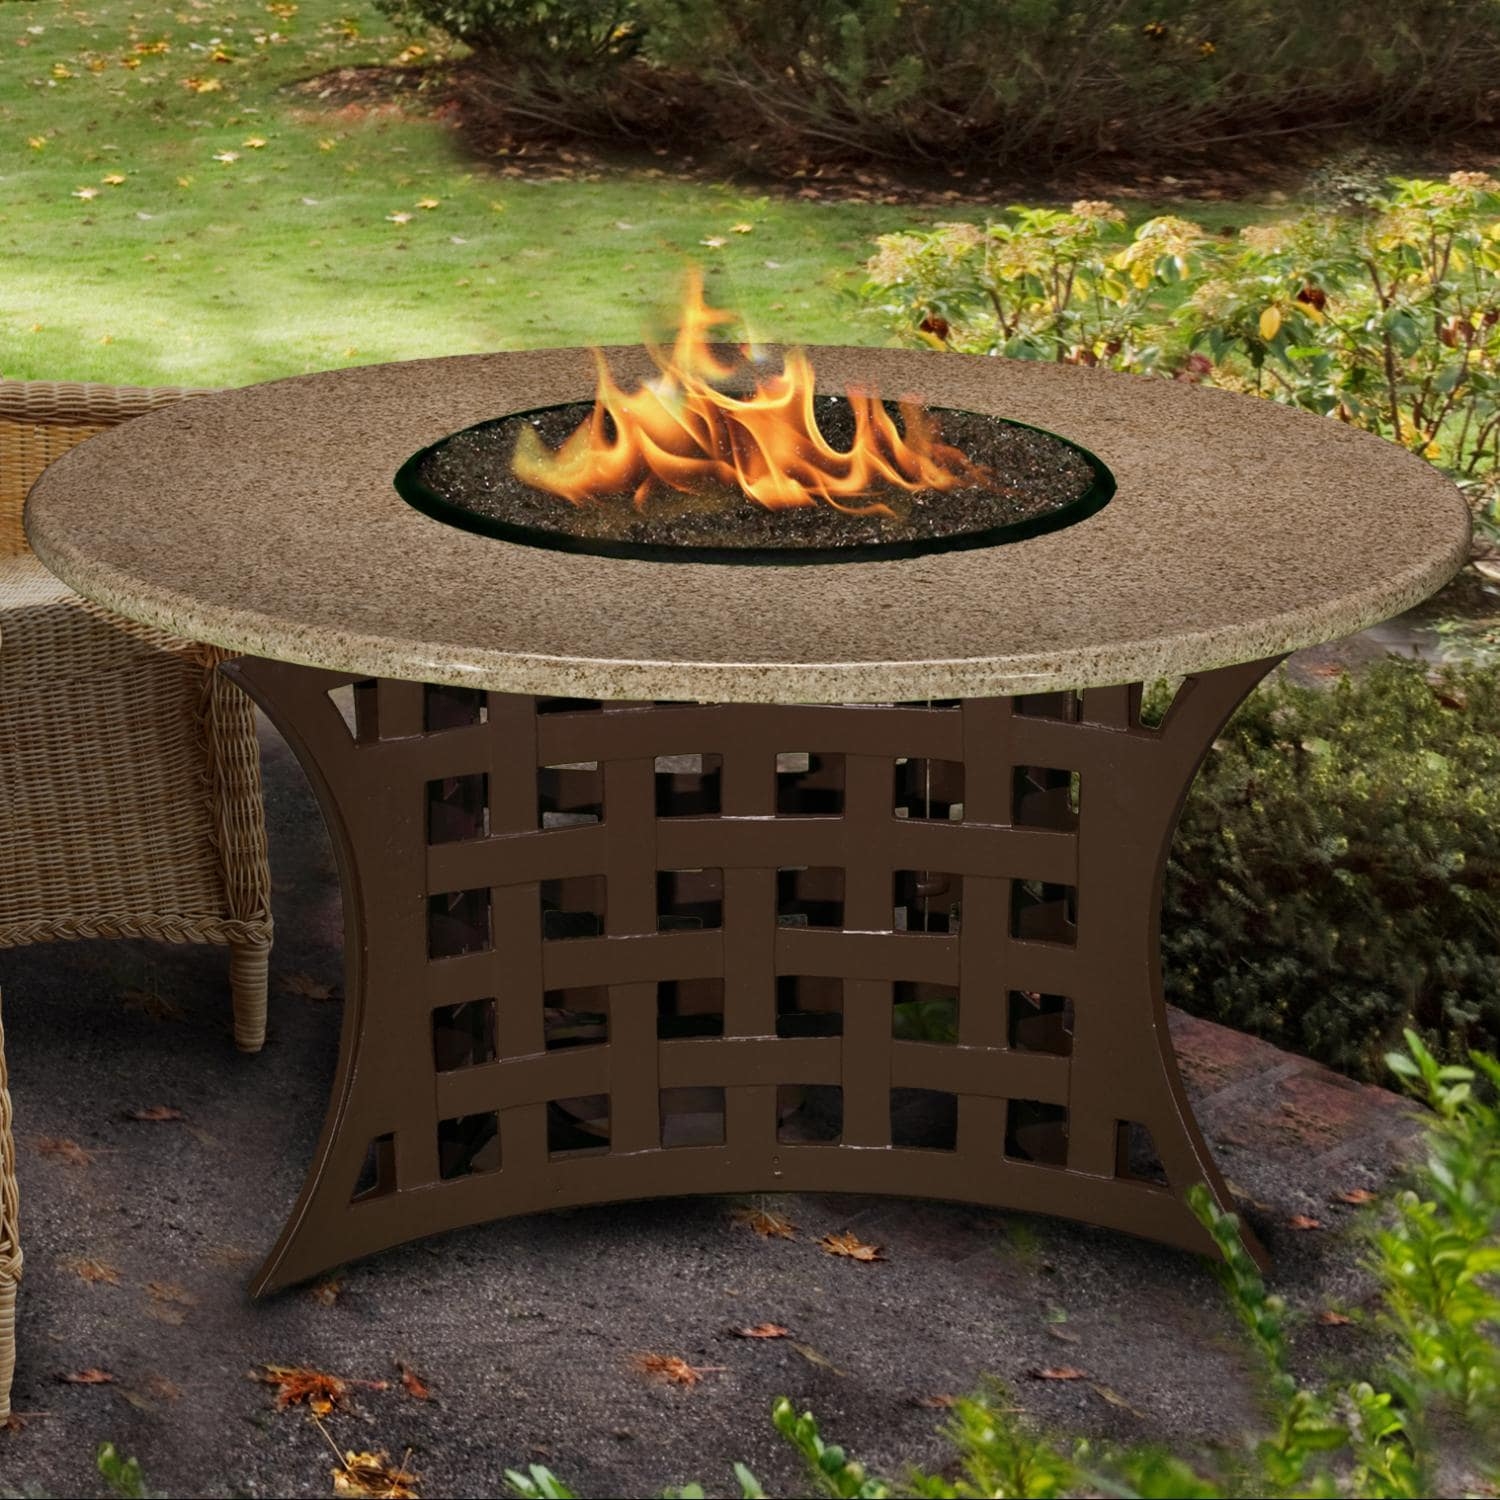 La Costa 42 Inch Propane Fire Pit Table By California Outdoor Concepts